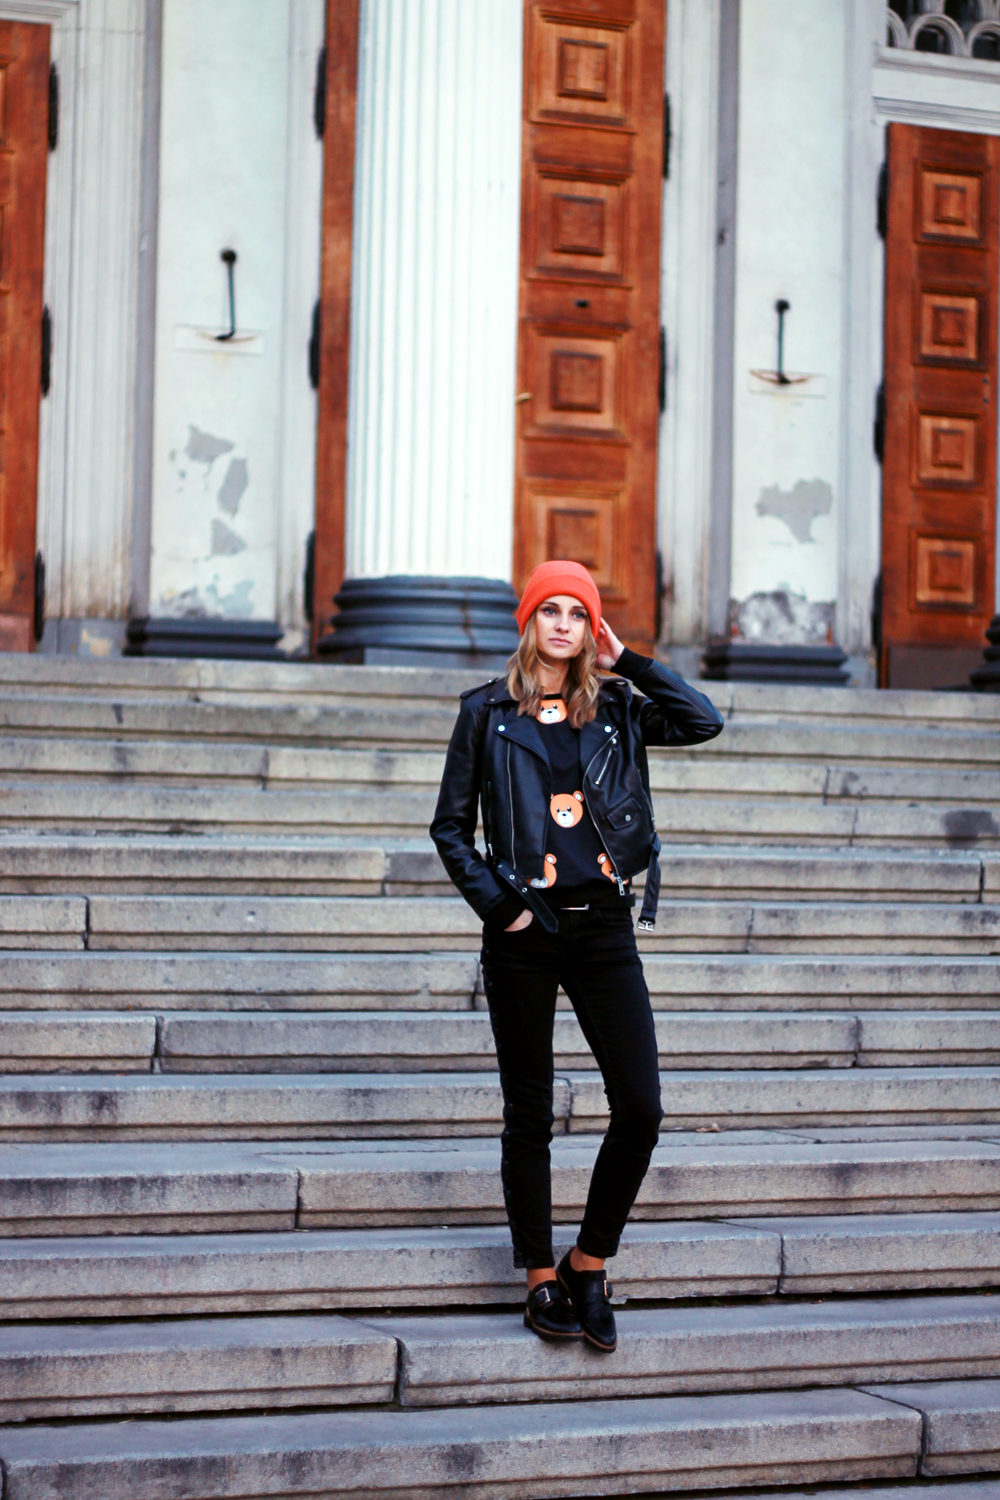 fashion love street style grunge bear sweatshirt zara tumblr girl vogue